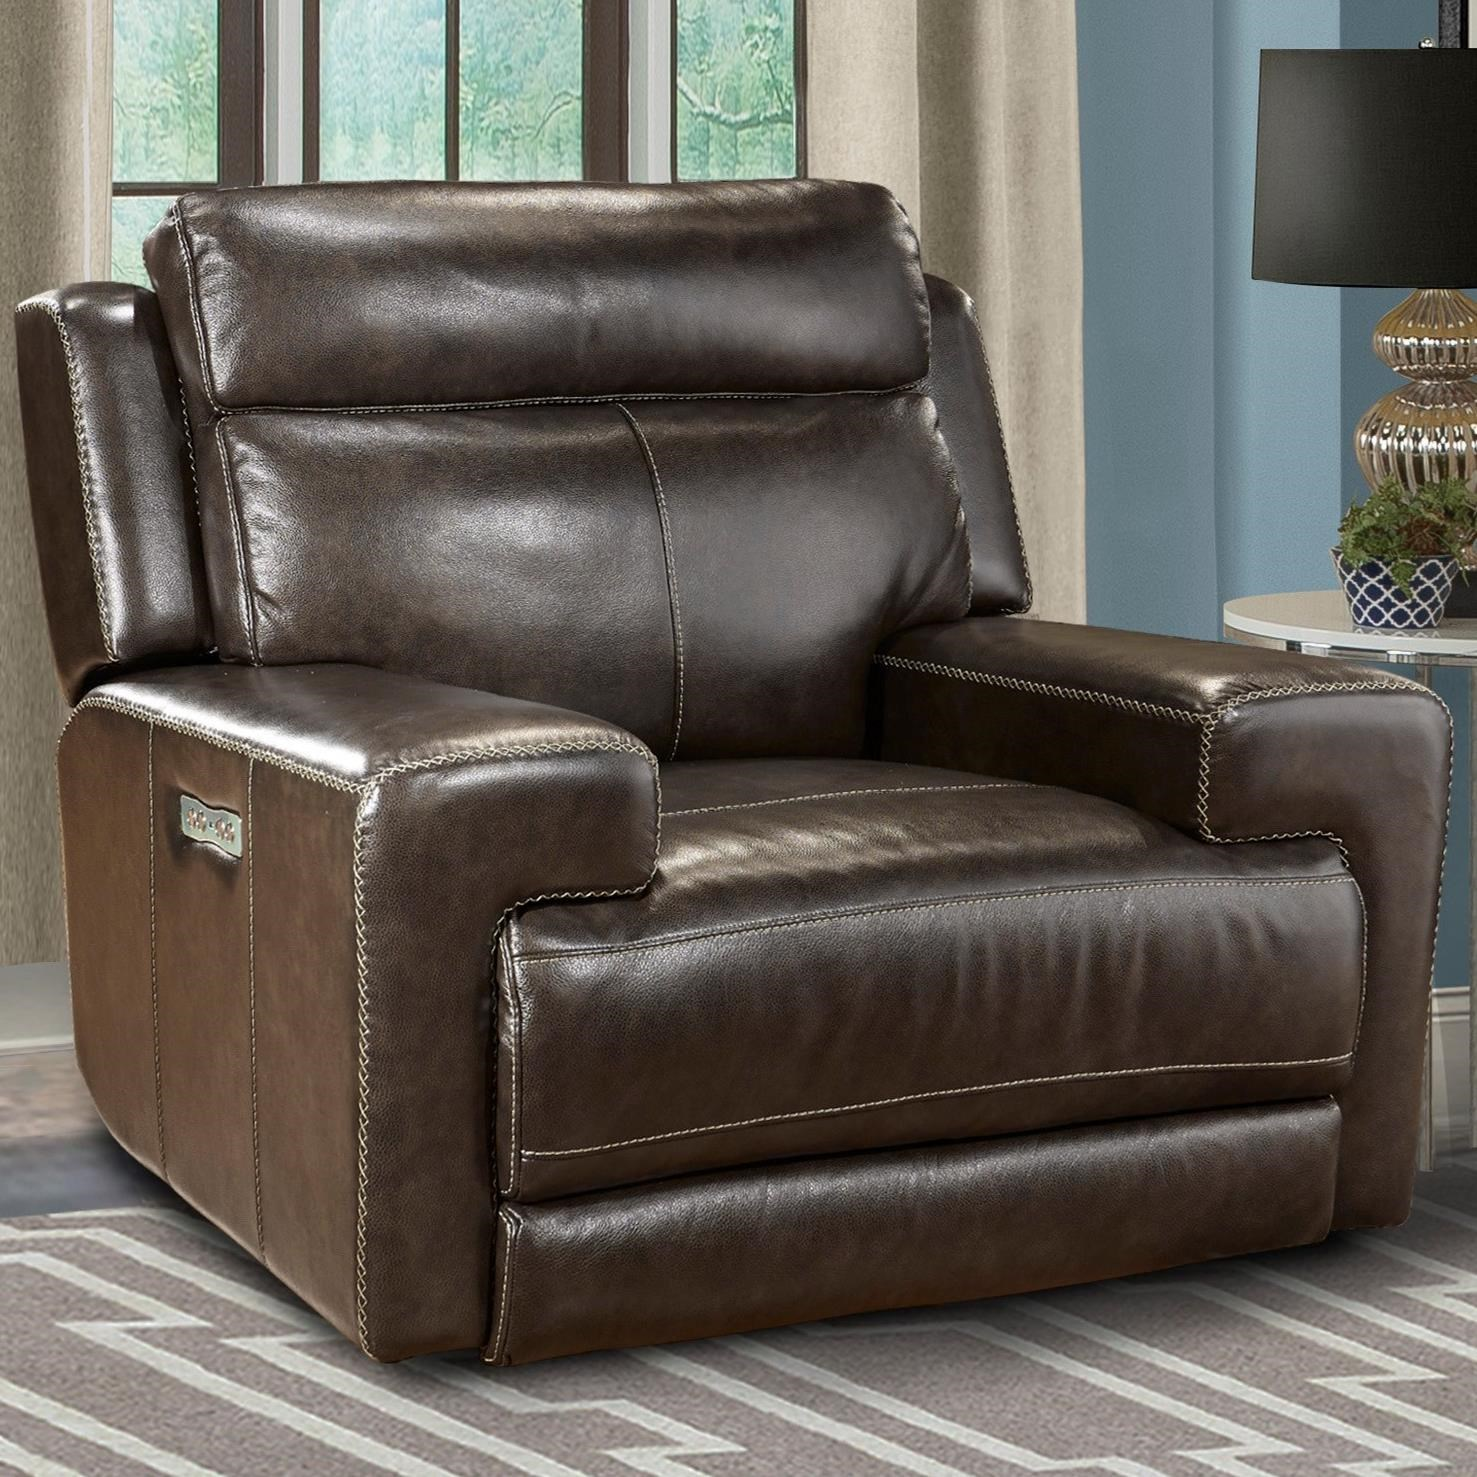 Parker Living Glacier Contemporary Power Recliner with